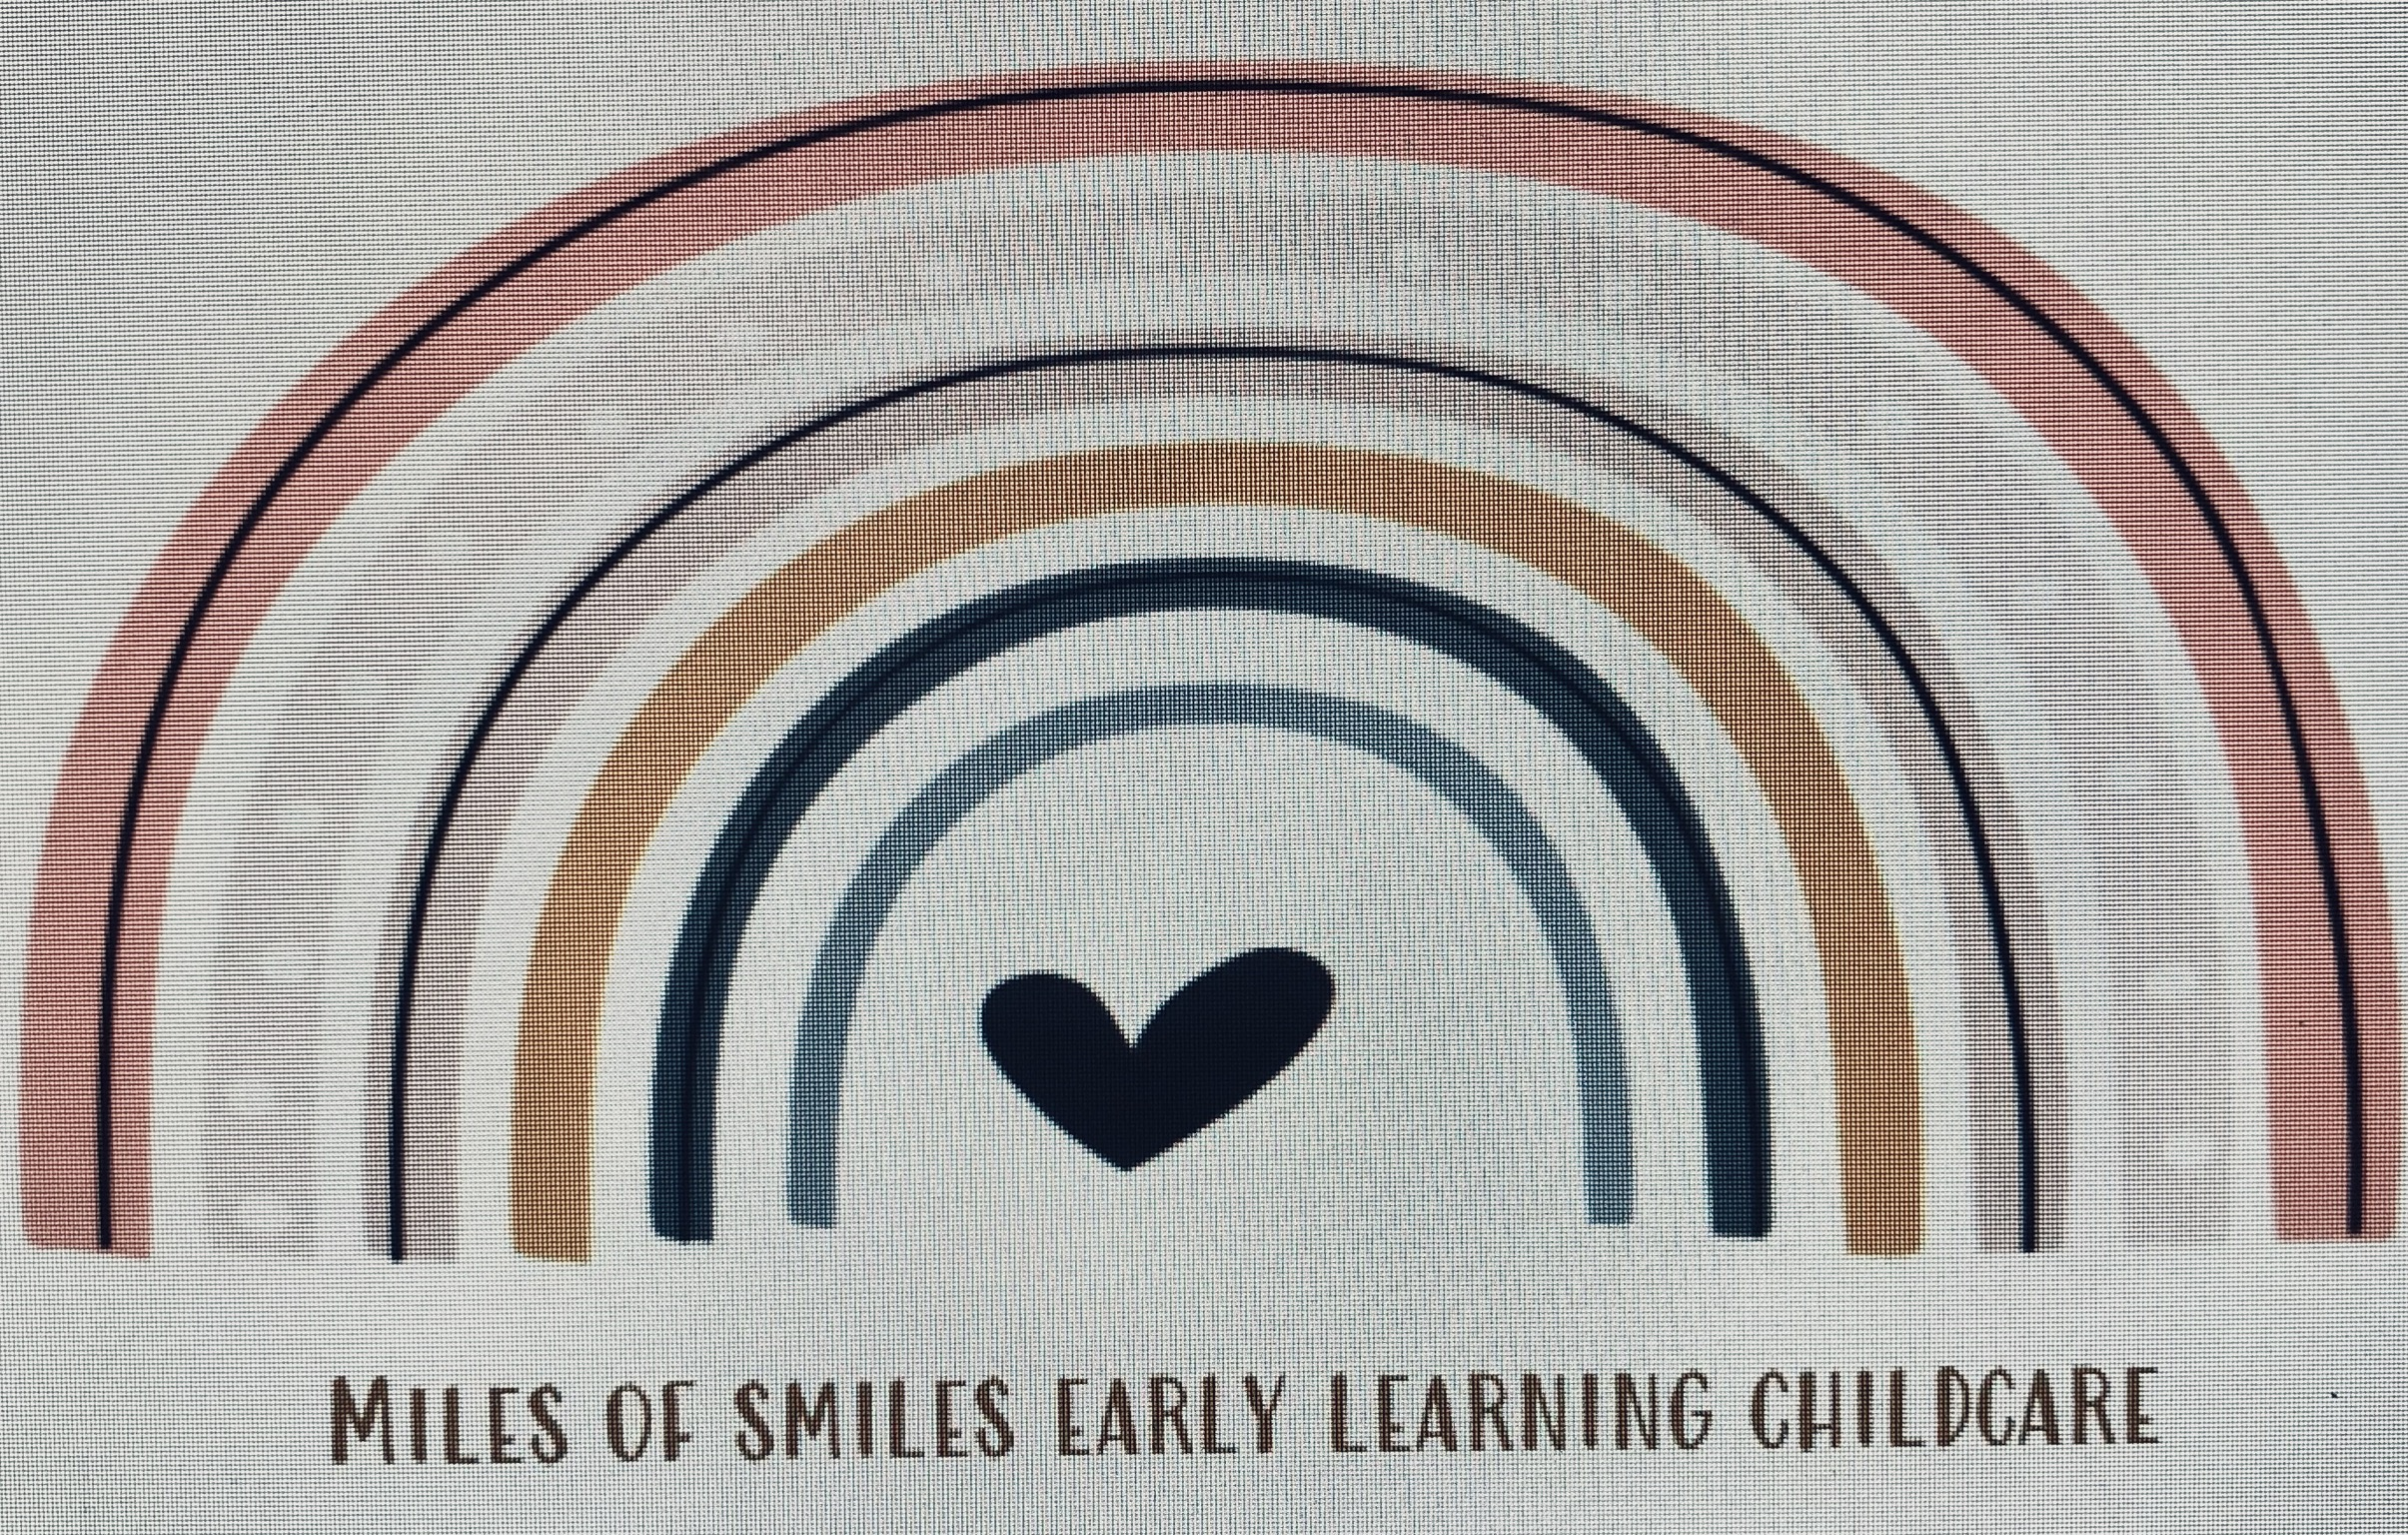 Miles of smiles early learning childcare